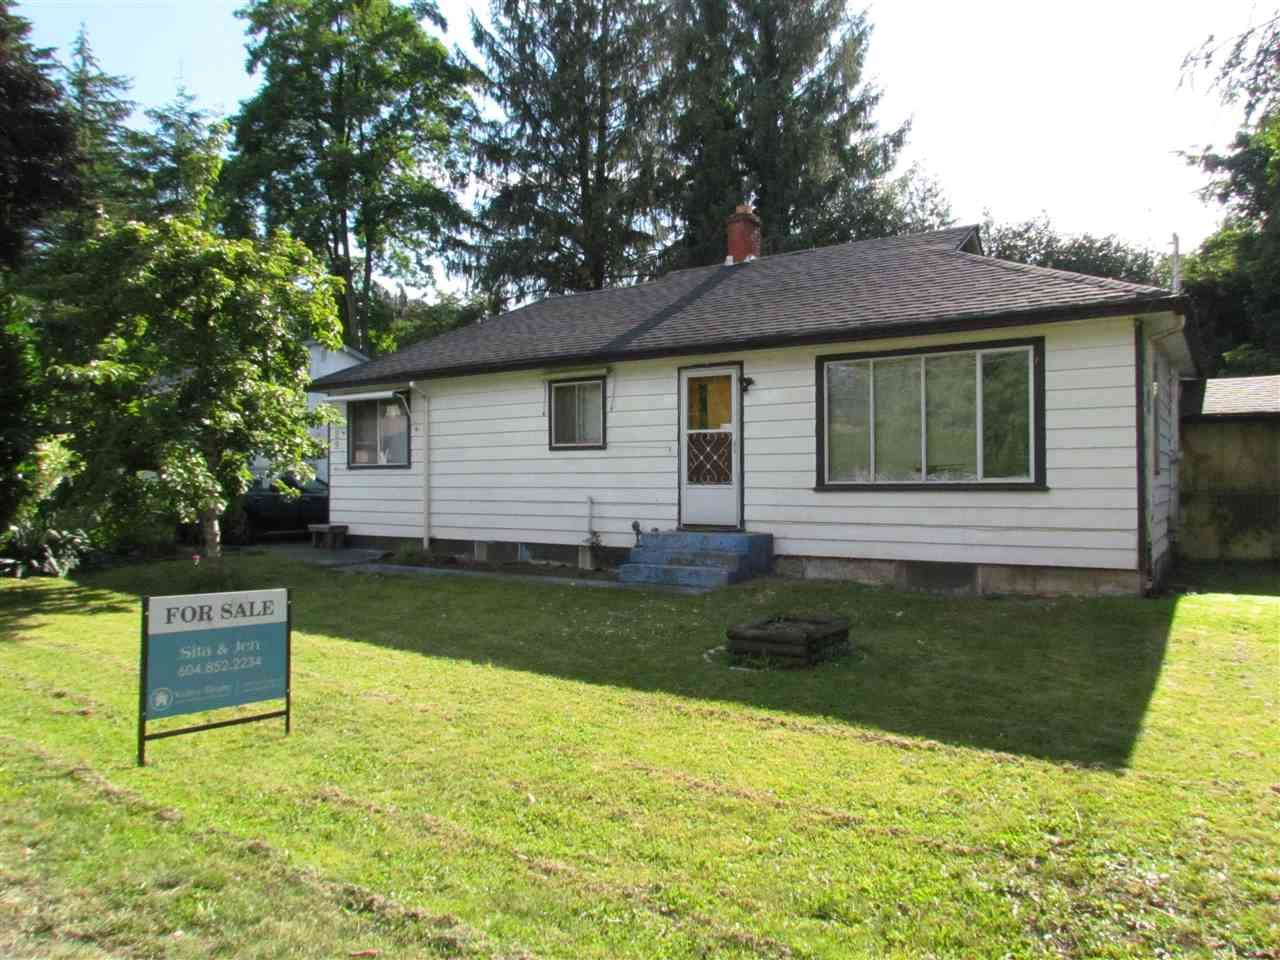 Main Photo: 2329 MOULDSTADE Road in Abbotsford: Central Abbotsford House for sale : MLS®# R2086422